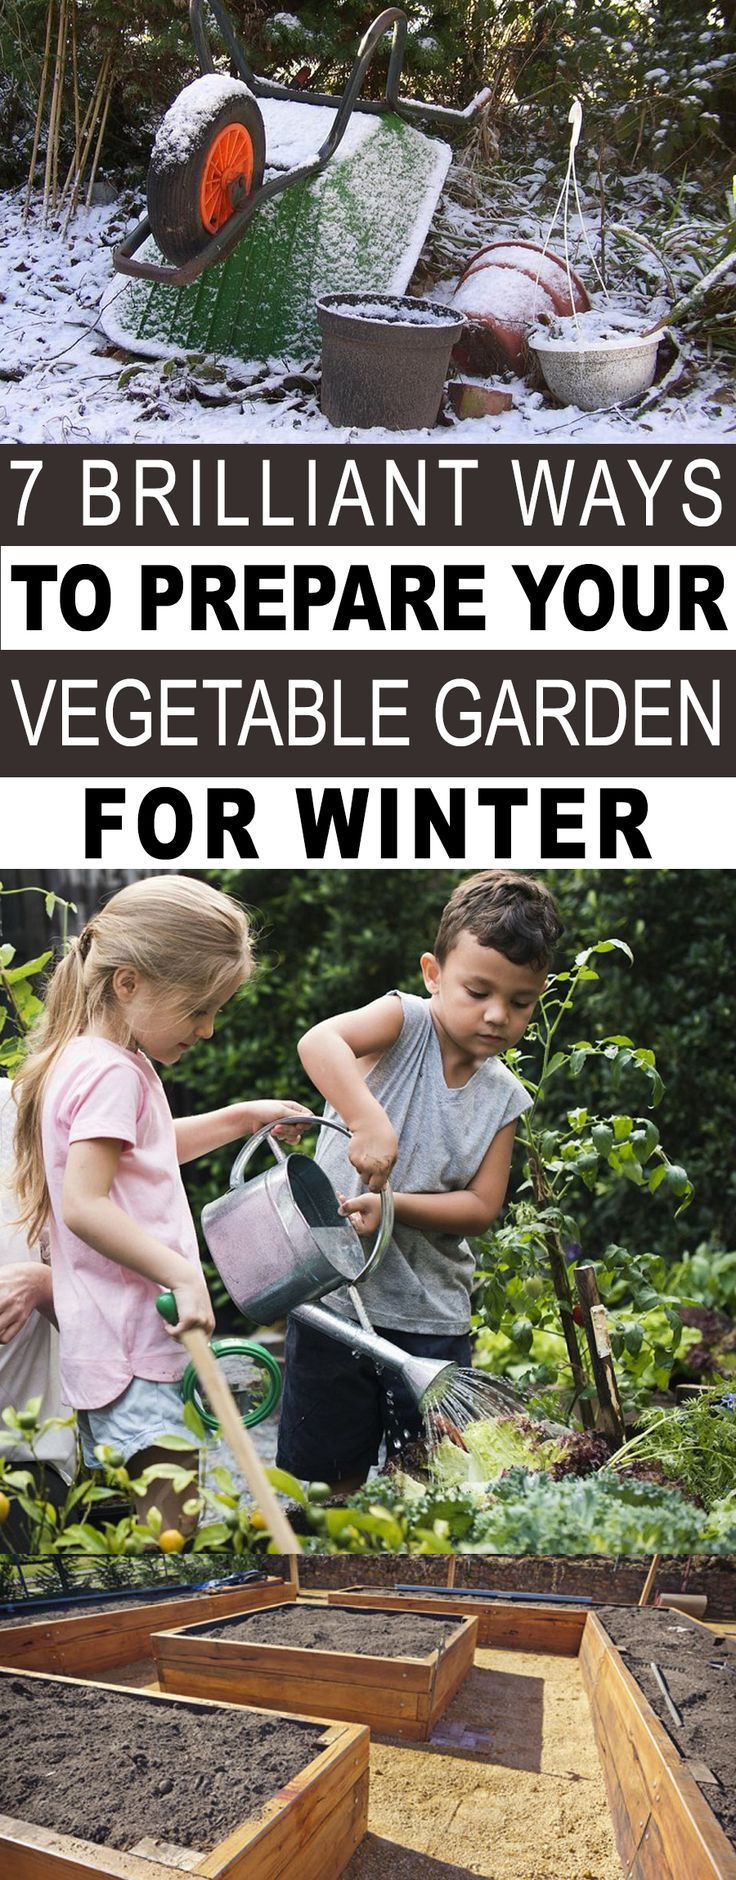 7 Brilliant Tips to Prepare Your Vegetable Garden for Winter  – Home and Garden